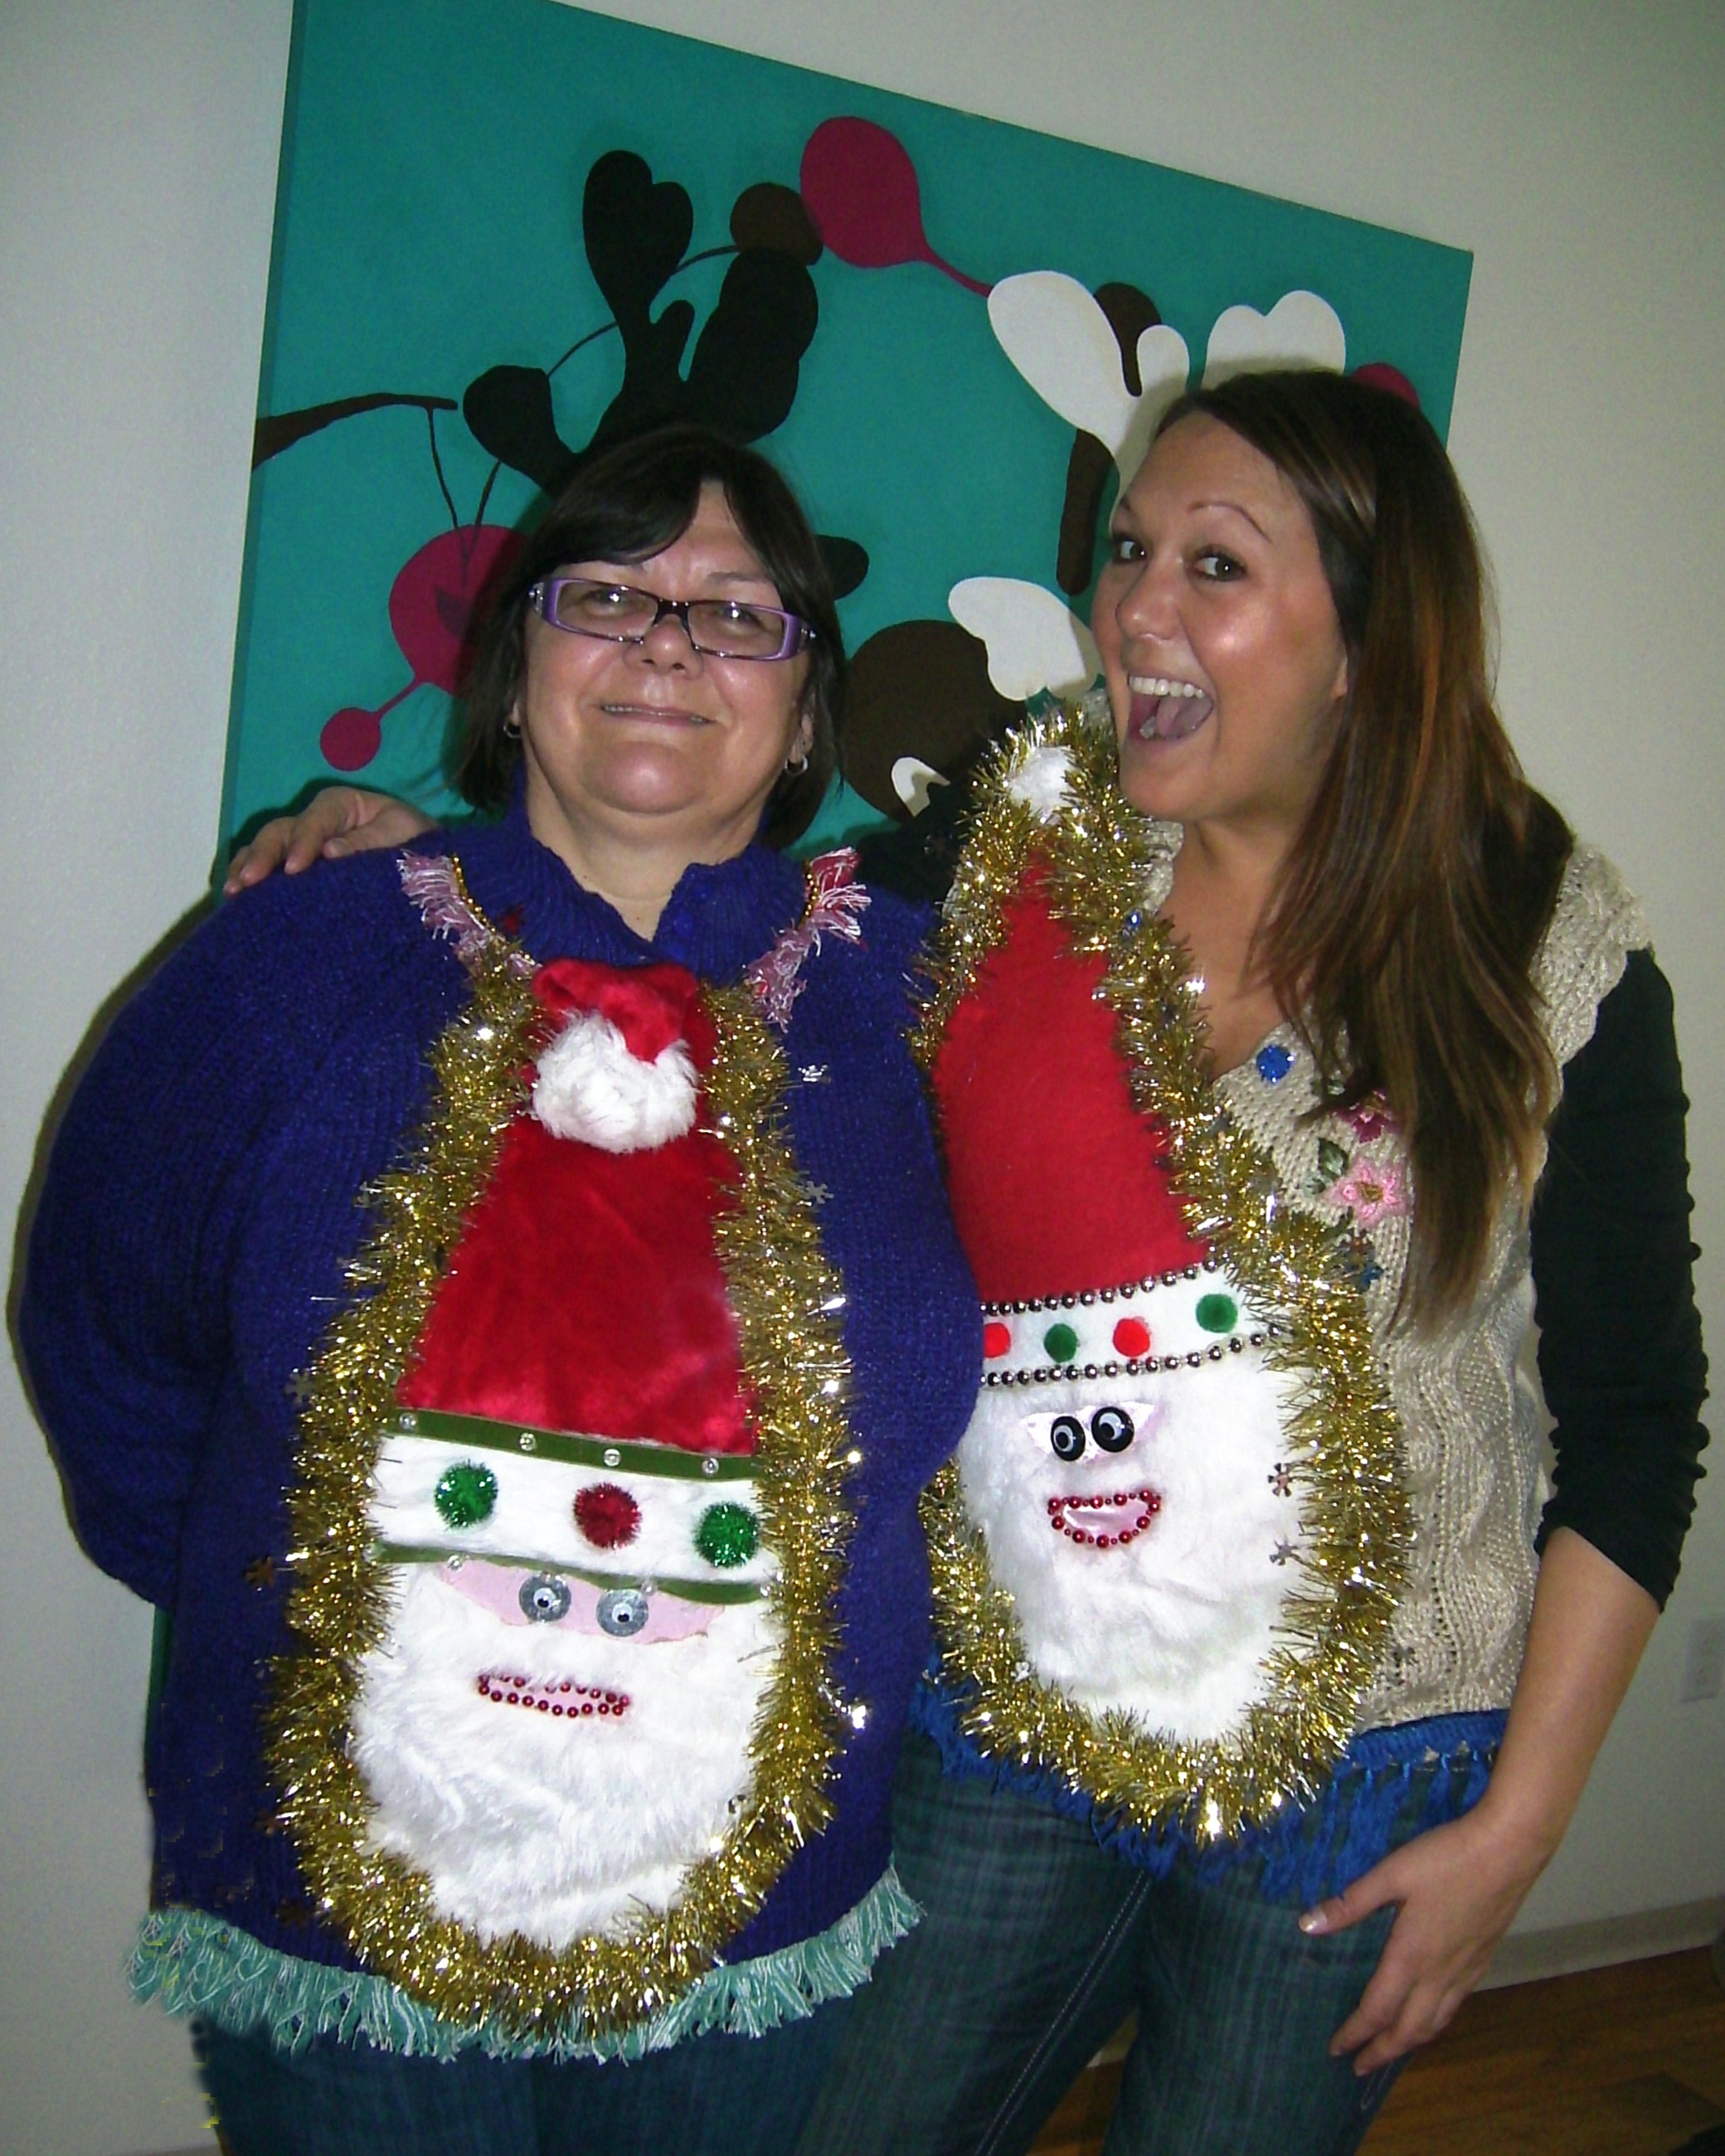 Ideas For Ugly Christmas Sweater Party Part - 33: Ugly Christmas Sweater Party Twins In Wacky Santa Sweaters From My Ugly  Christmas Sweater, ...